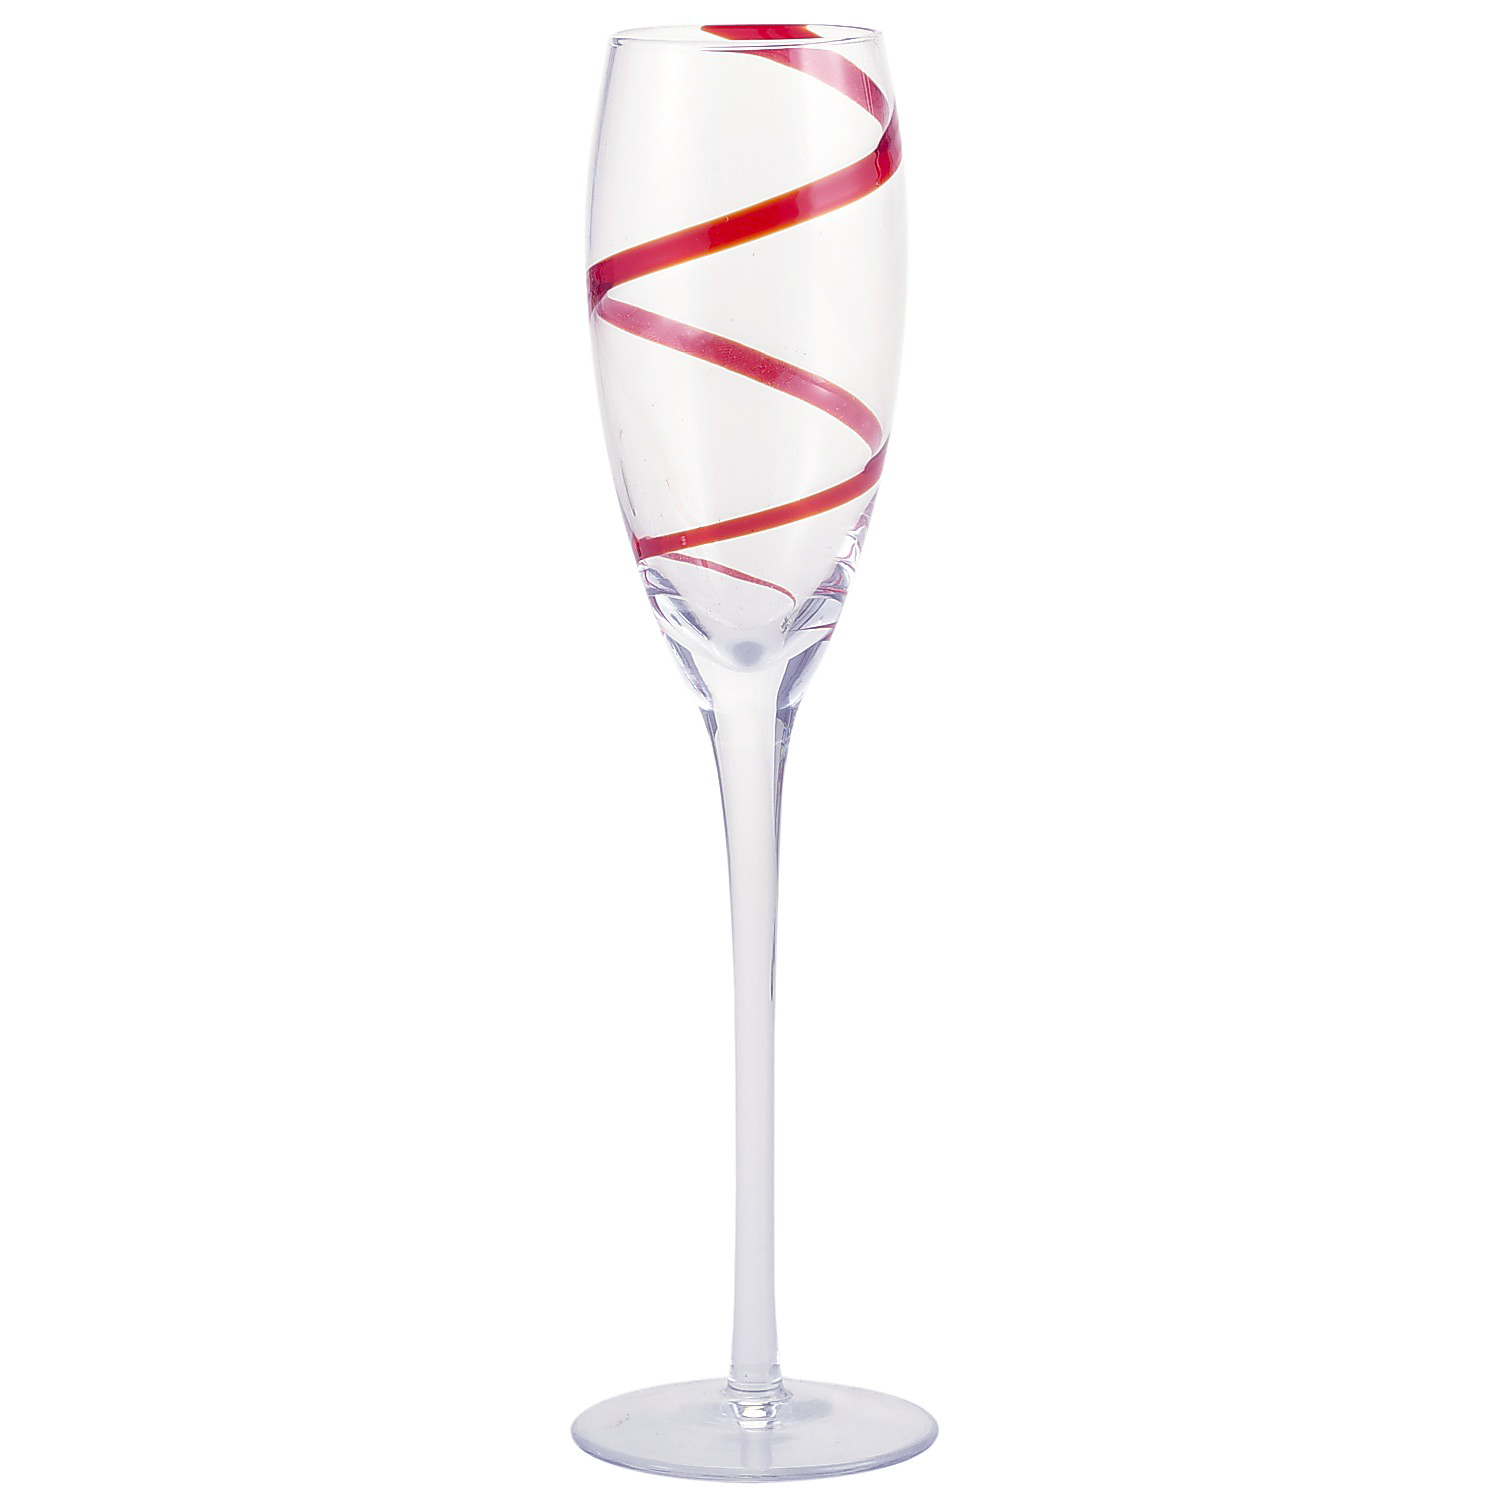 Spiral Line Champagne Flute - Red